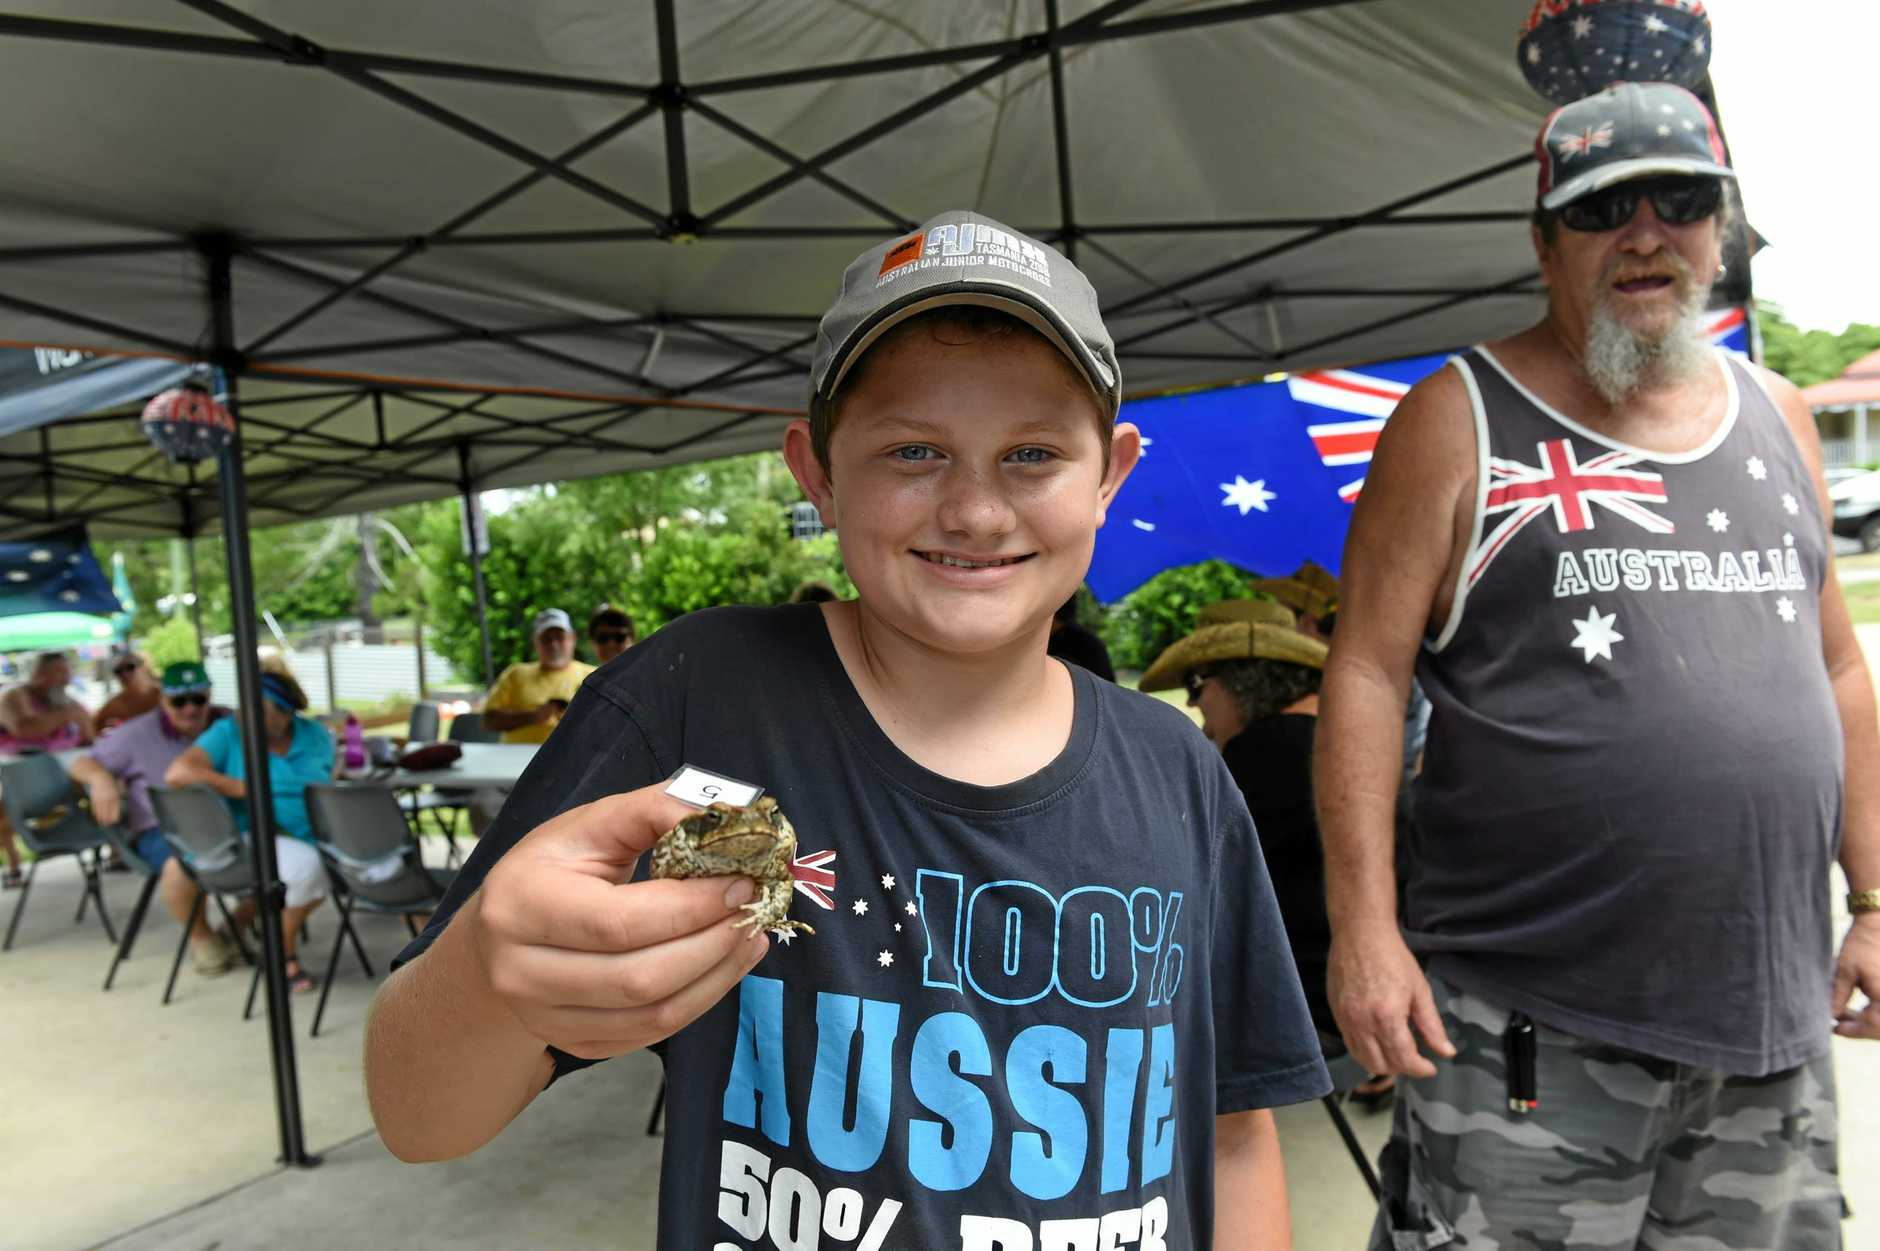 TRUE BLUE TIARO: Nate Coates with the winning toad 'Croaked It' after the toad races at the Tiaro Australia Day celebrations.